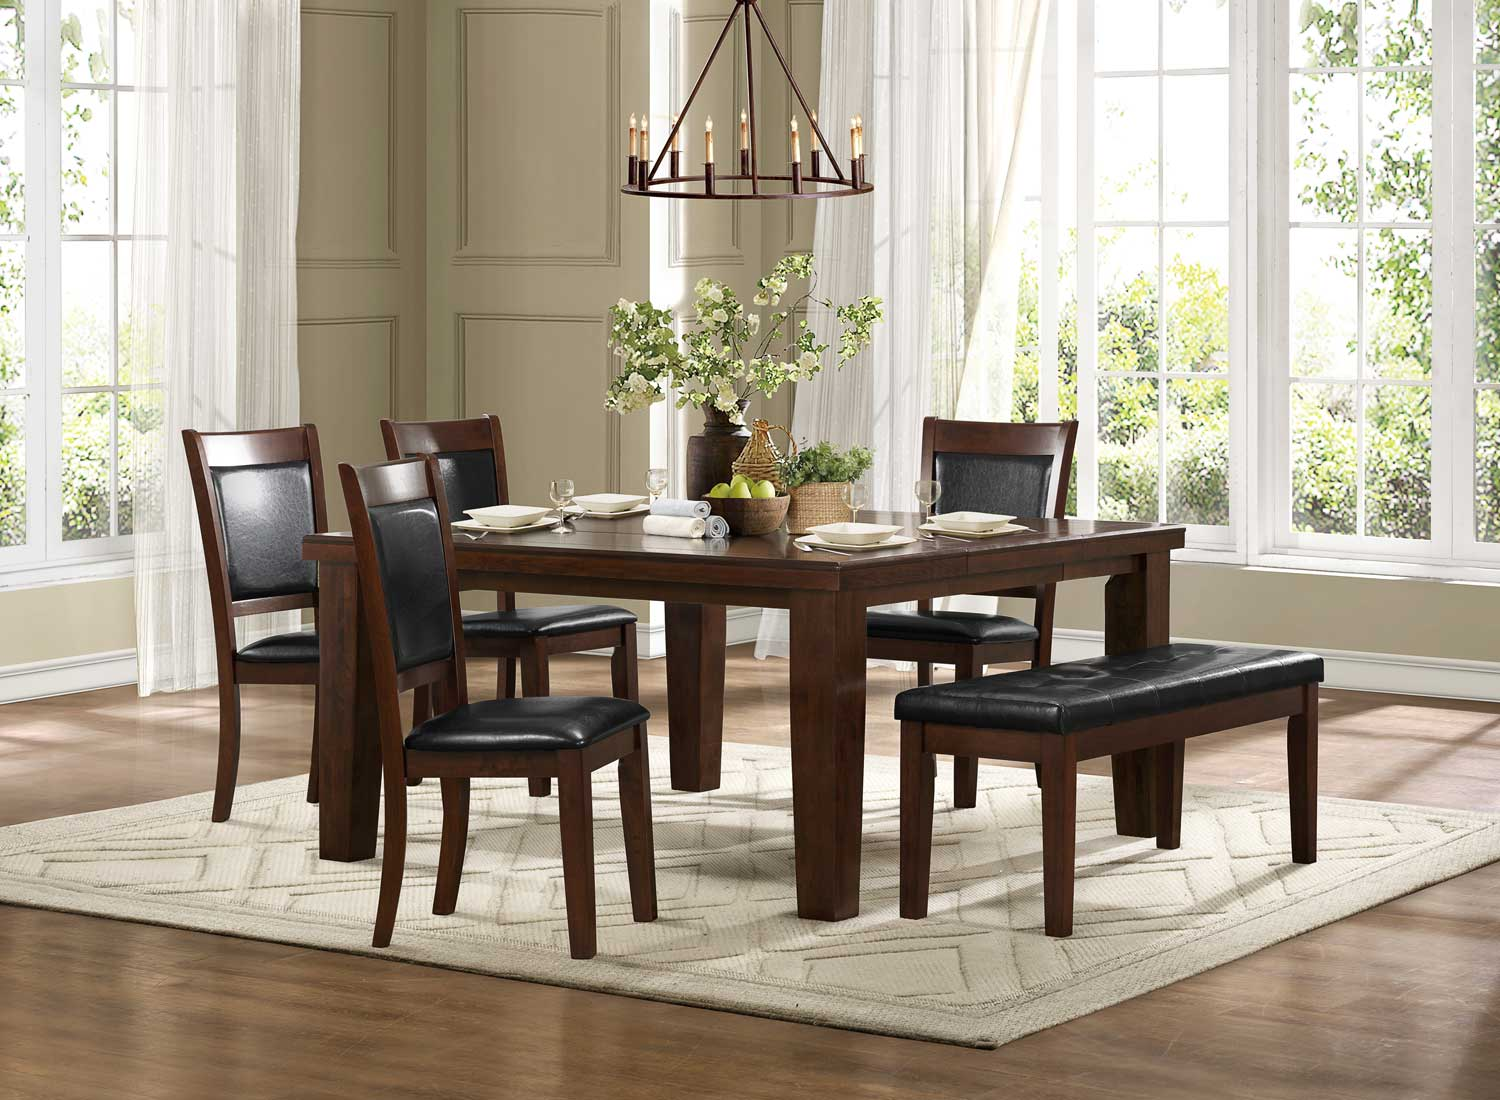 Homelegance Avery 9 Piece Pedesatal Dining Room Set In